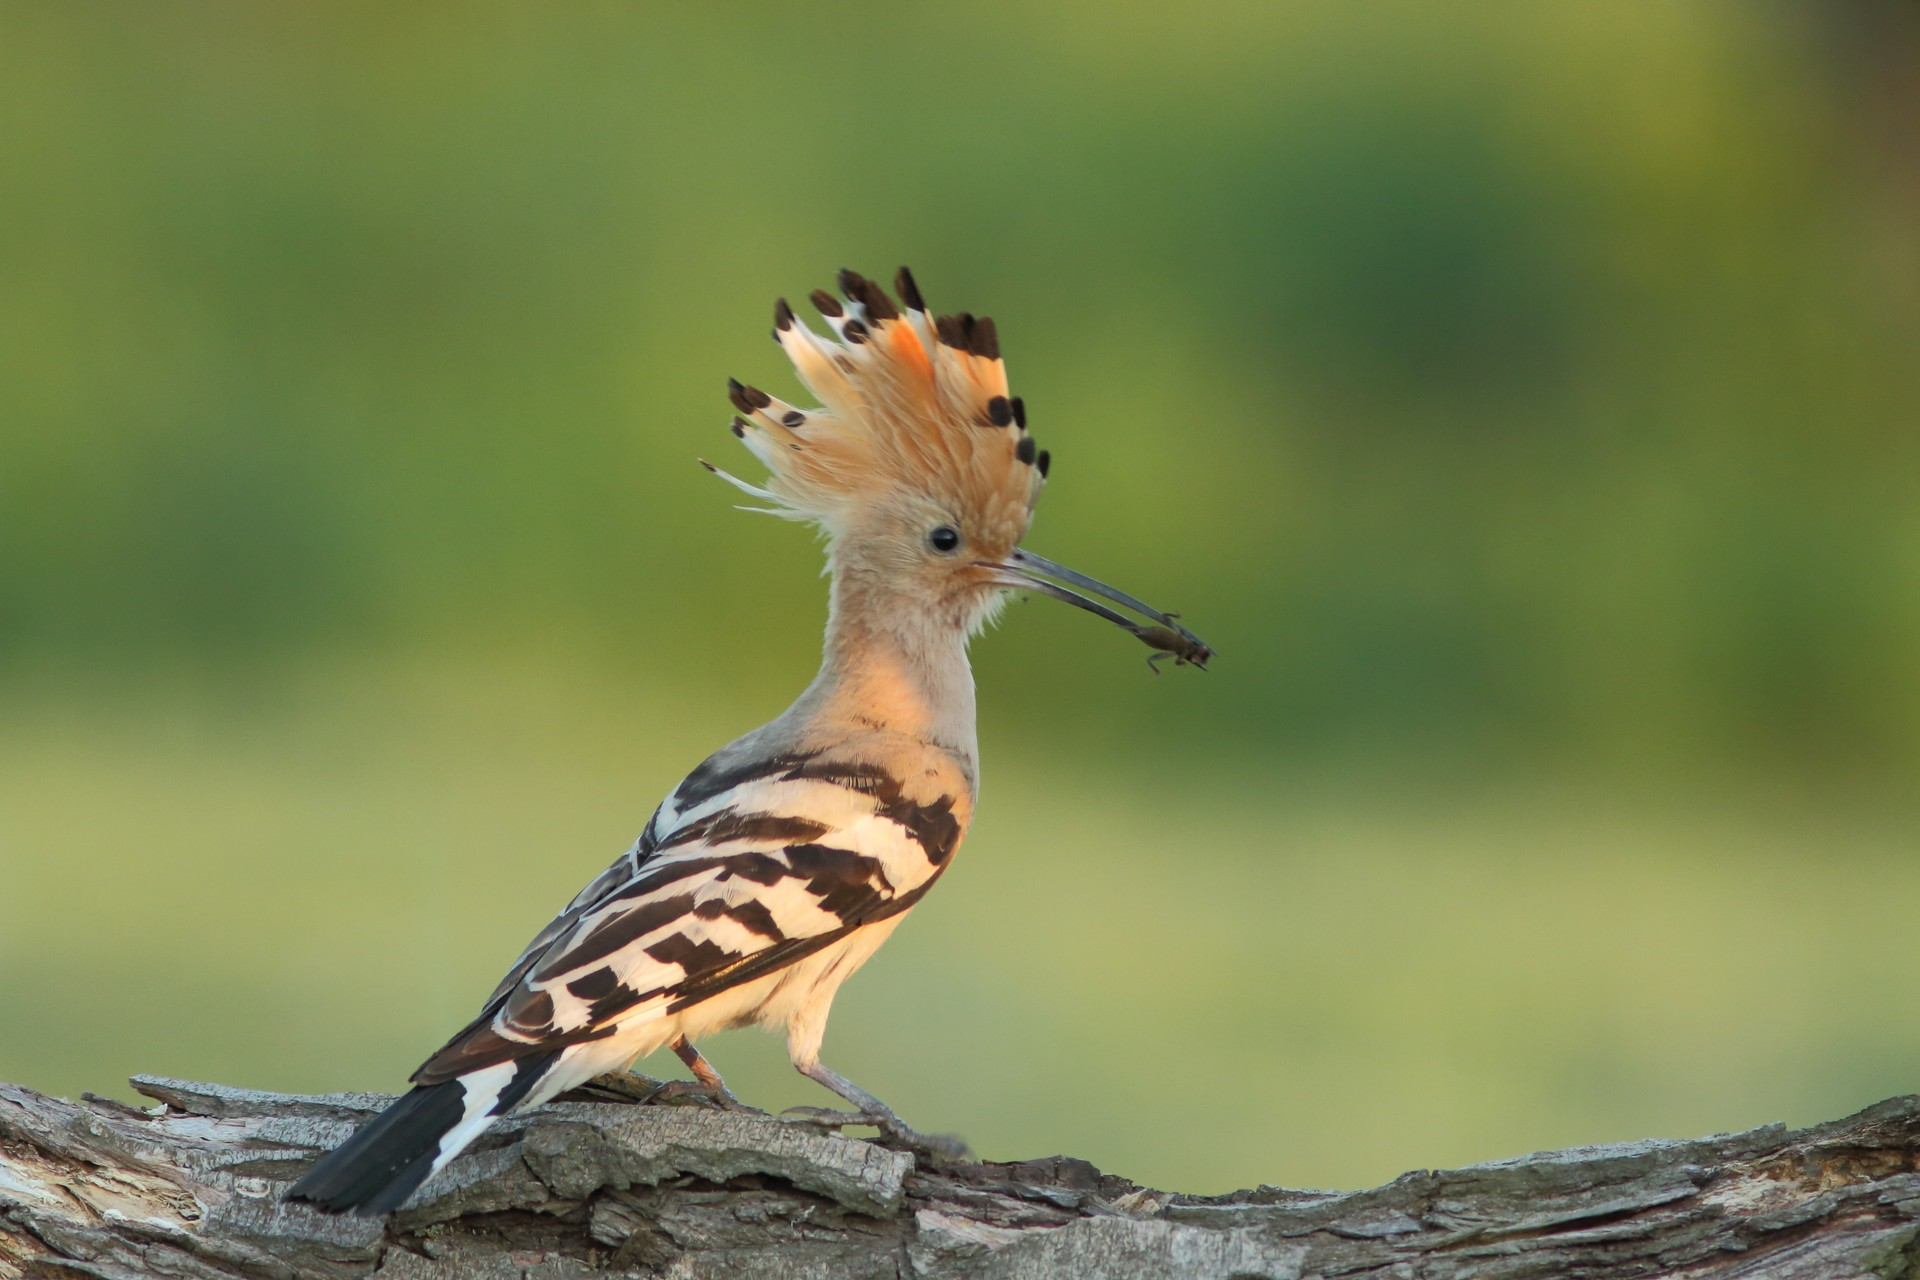 A colourful hoopoe bird found in Armenia's Syunik Province